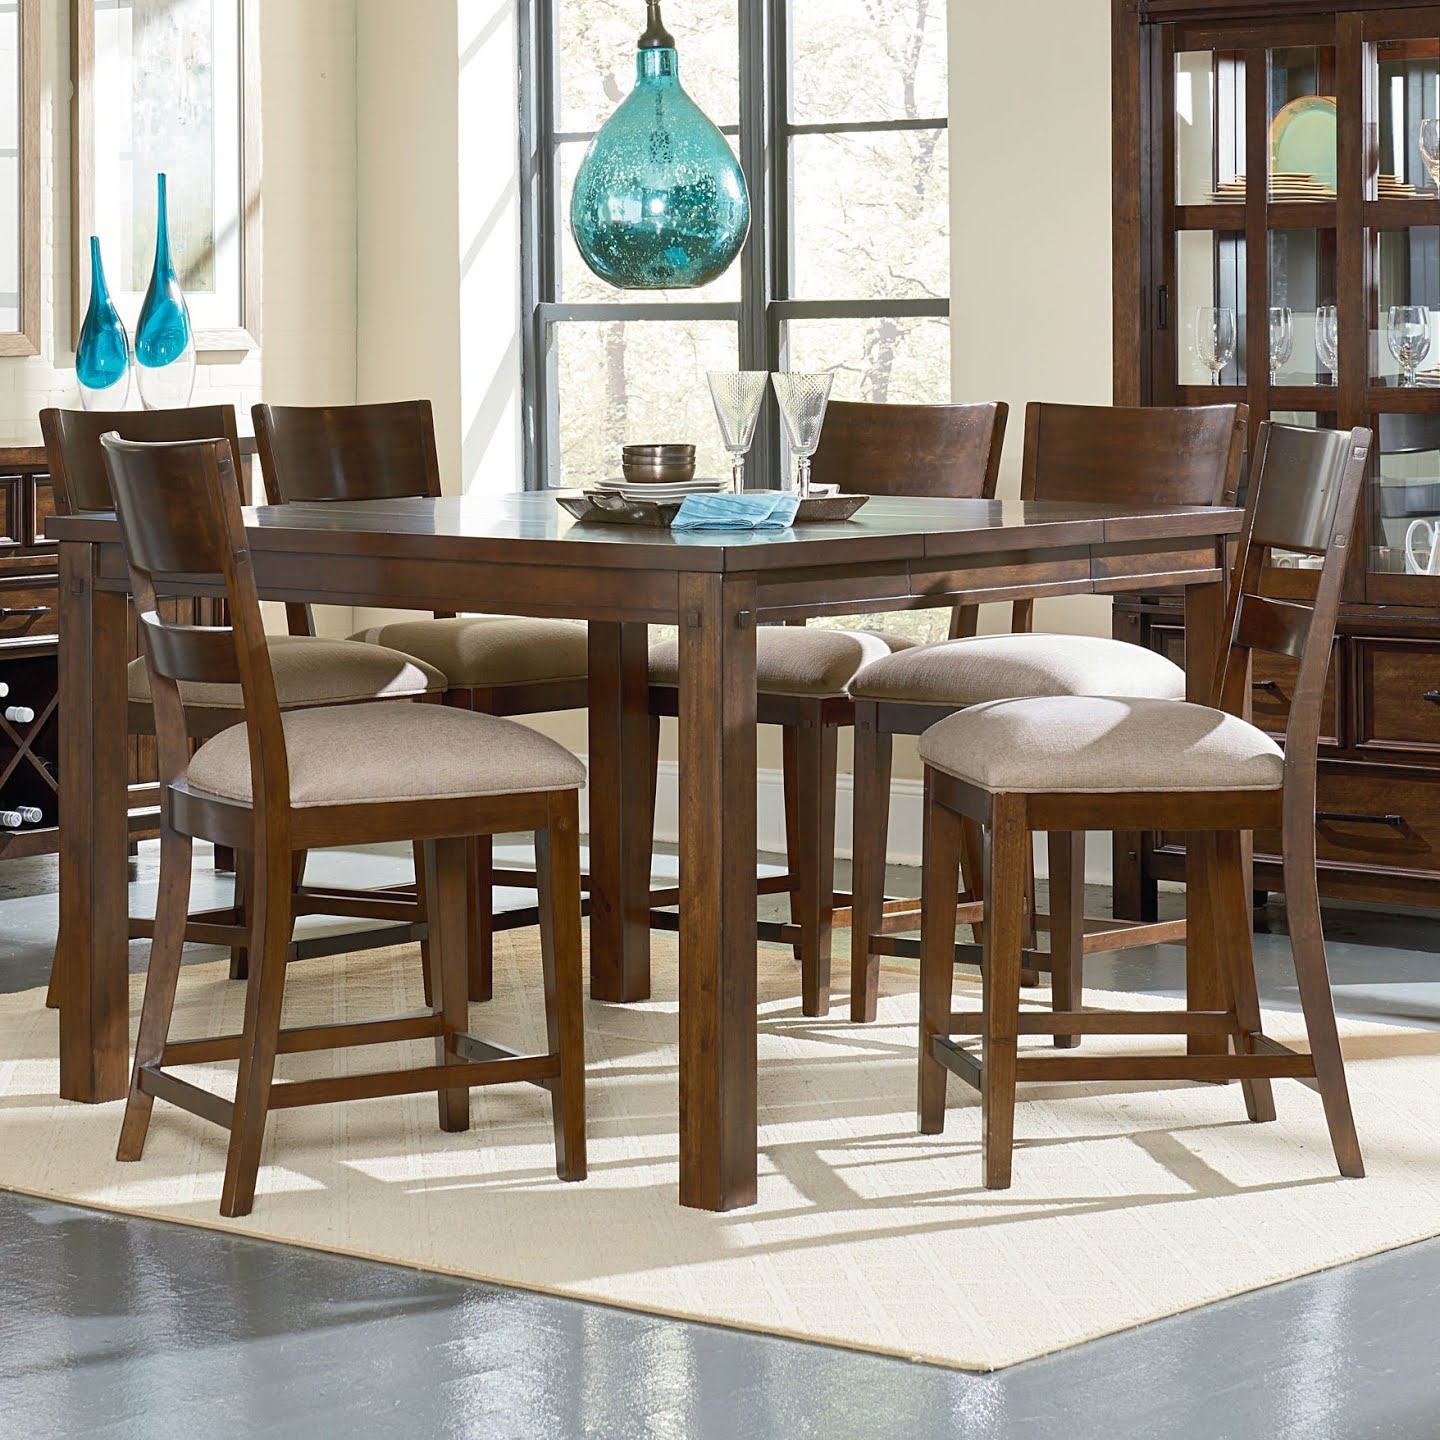 50 Square Dining Table For 6 You Ll Love In 2020 Visual Hunt